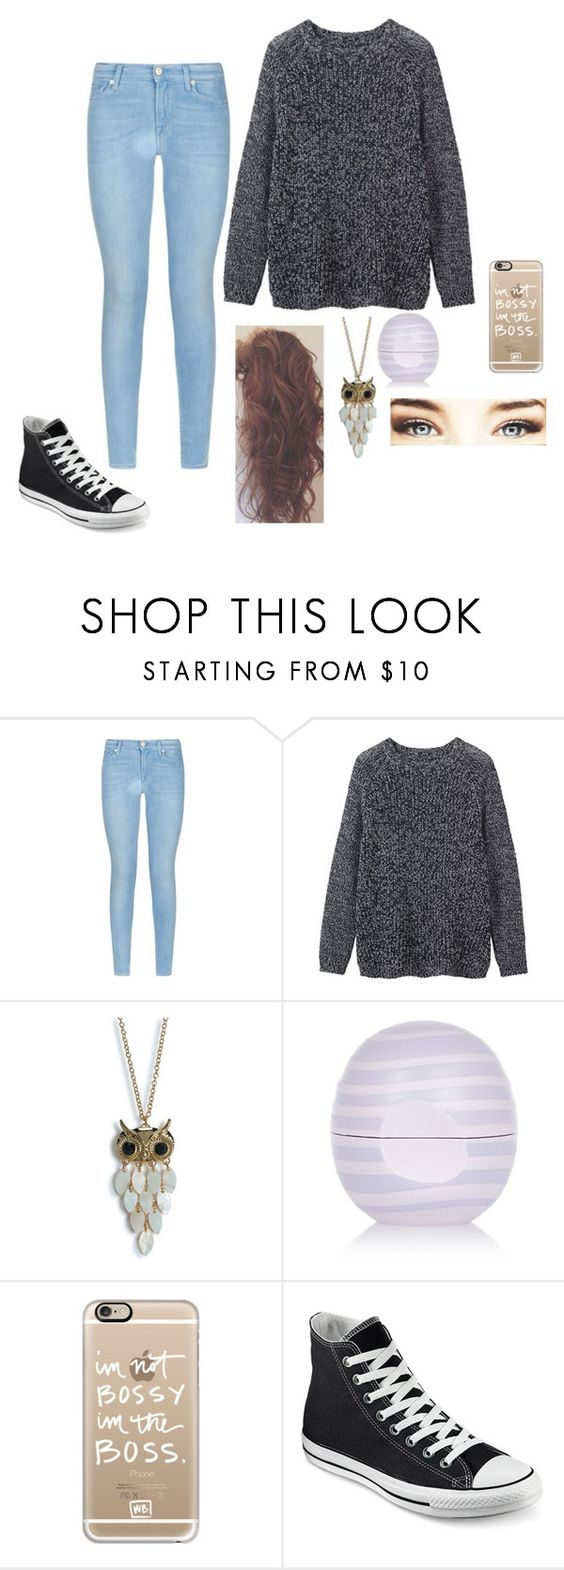 """""""Cousin's engagement party"""" by love-the-world123 ❤ liked on Polyvore featuring 7 For All Mankind, Toast, Aéropostale, River Island, Casetify, Converse, women's clothing, women's fashion, women and female"""